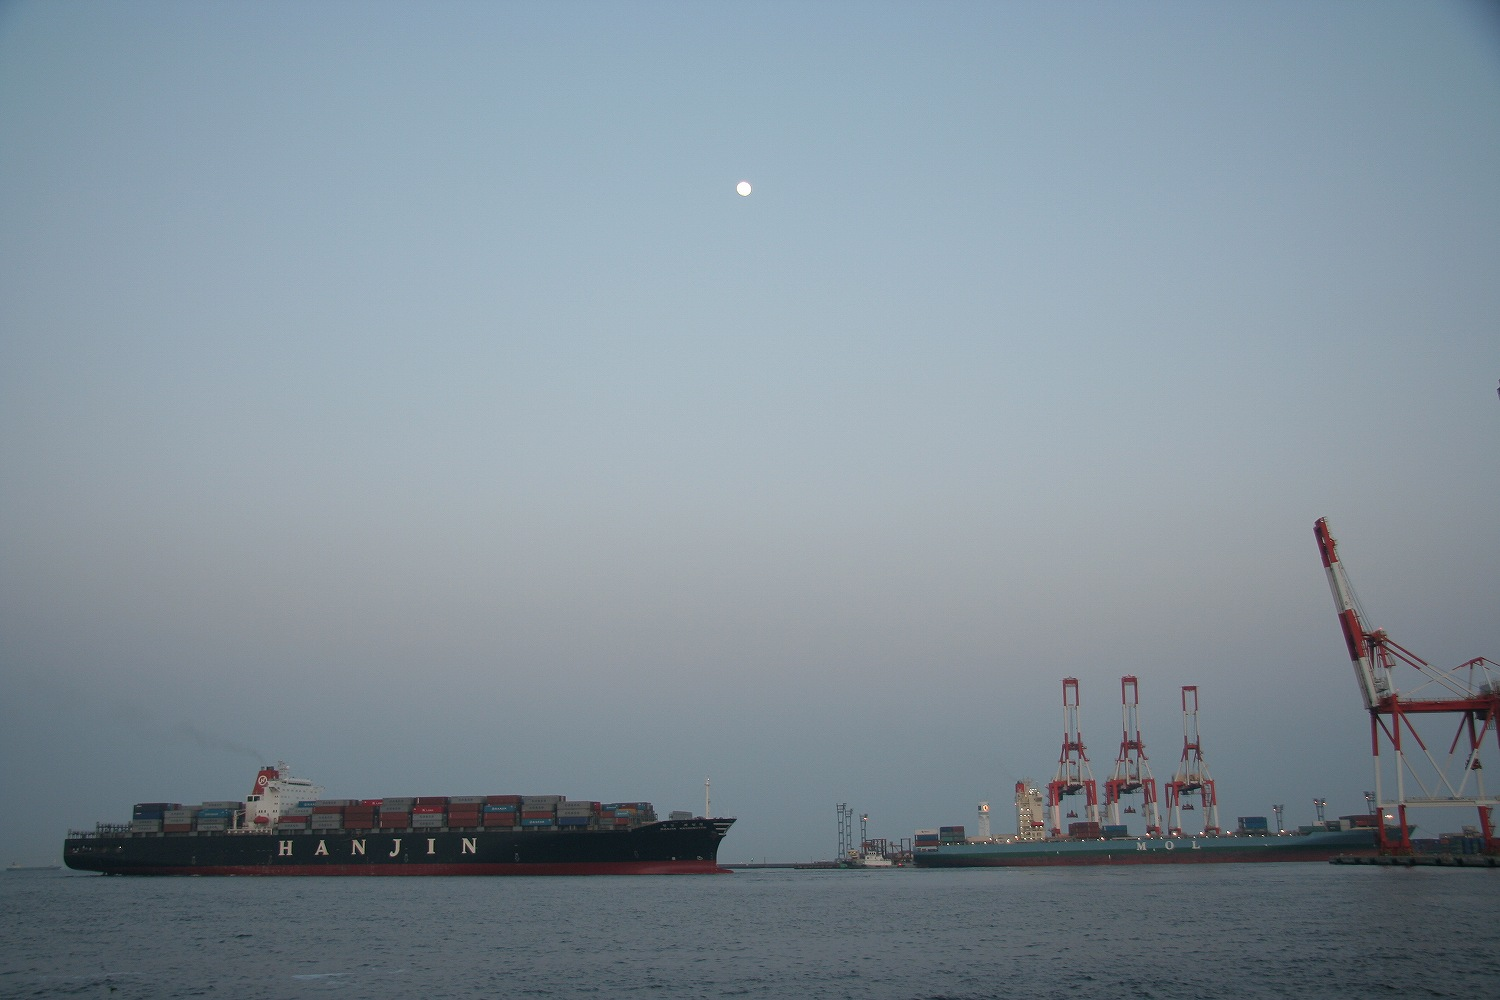 HANJIN WASHINGTON&MOL DOMINANCE